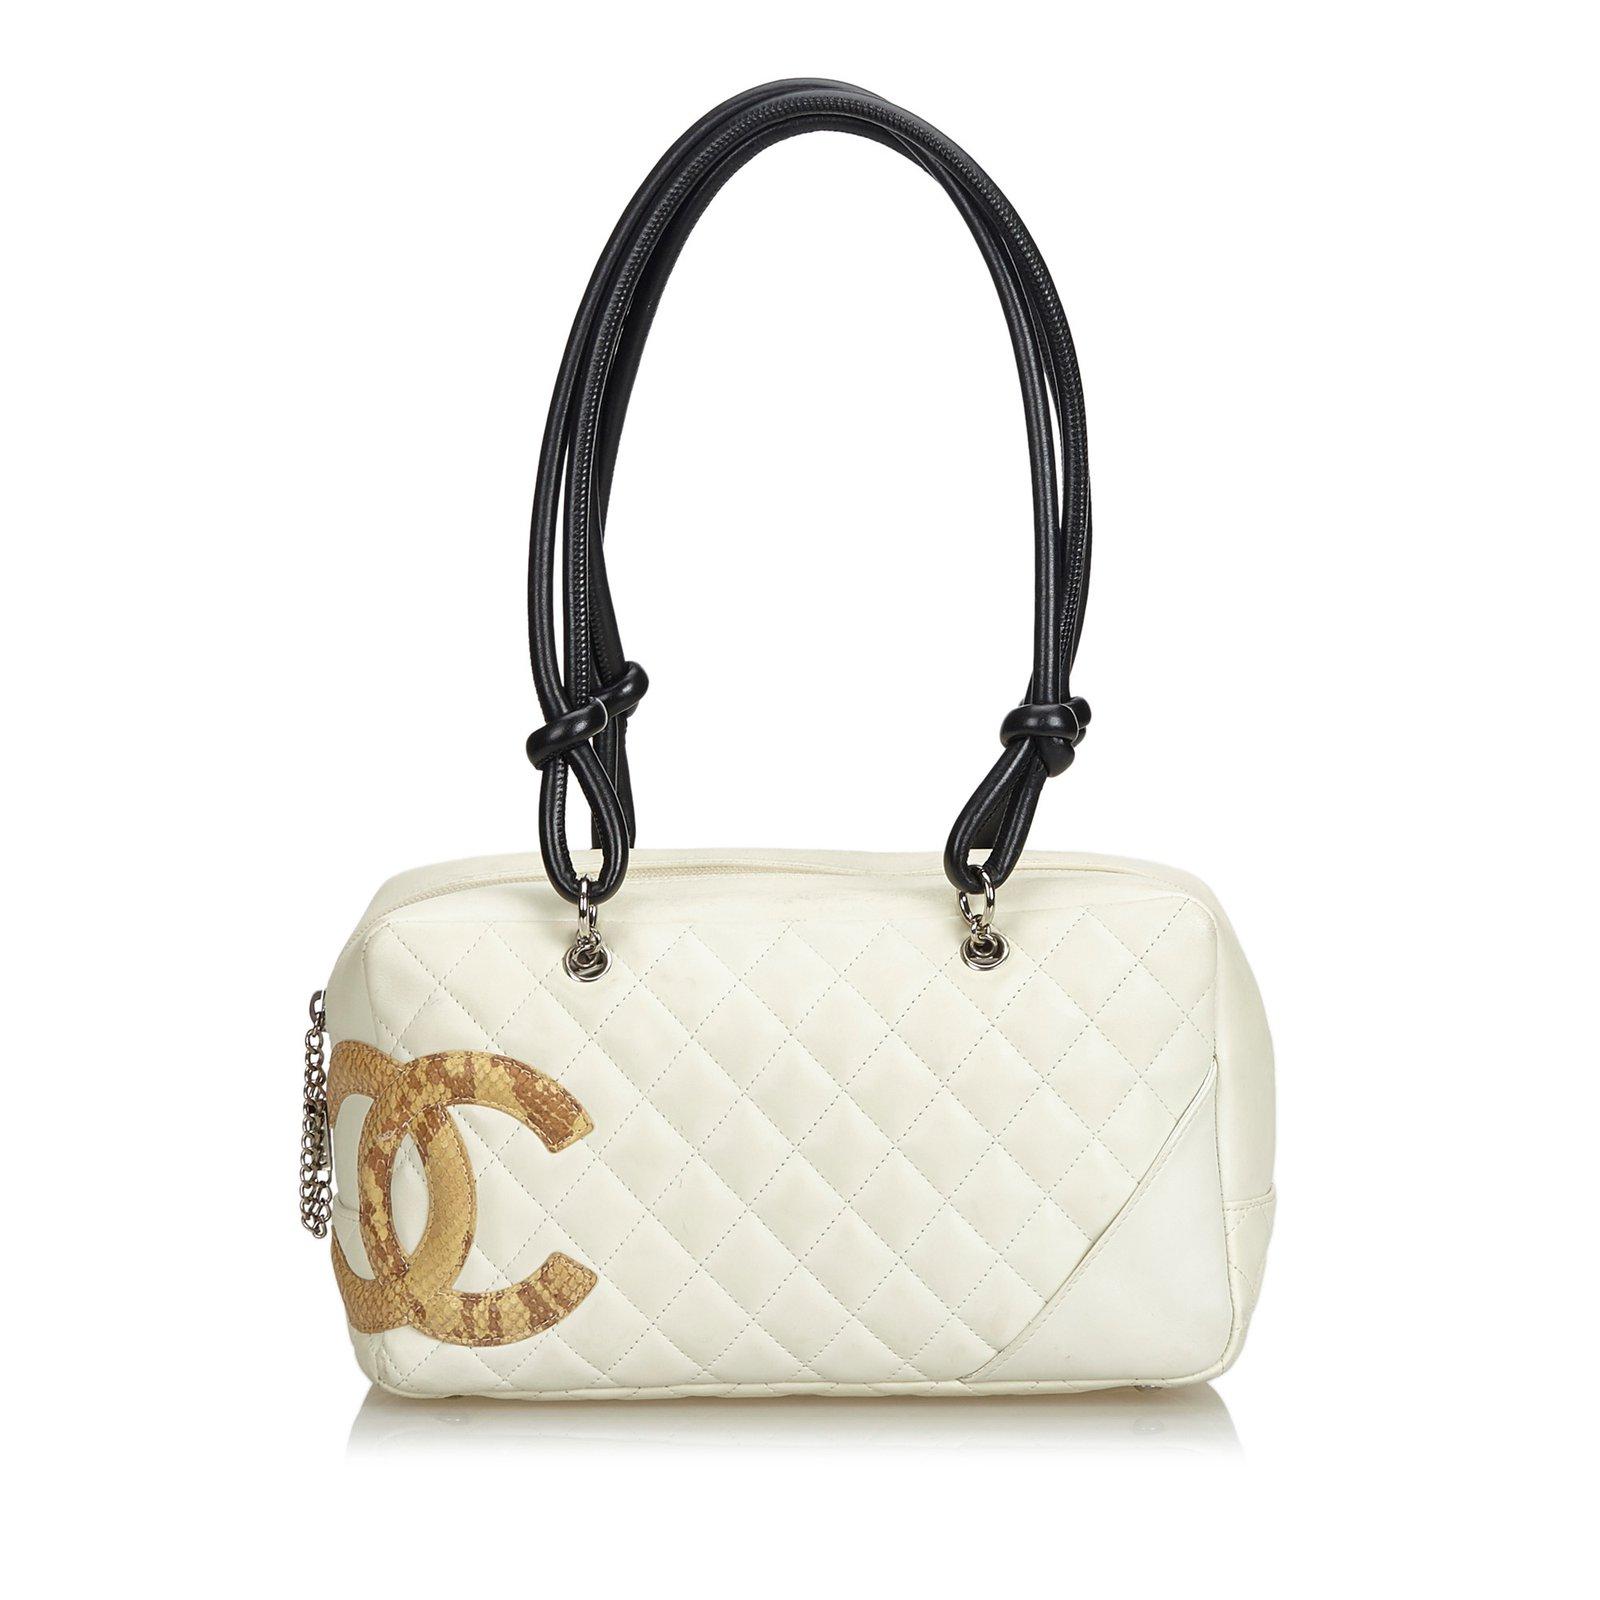 d13fa0f00620 Chanel Cambon Ligne Shoulder Bag Handbags Leather Brown,White,Beige,Cream  ref.